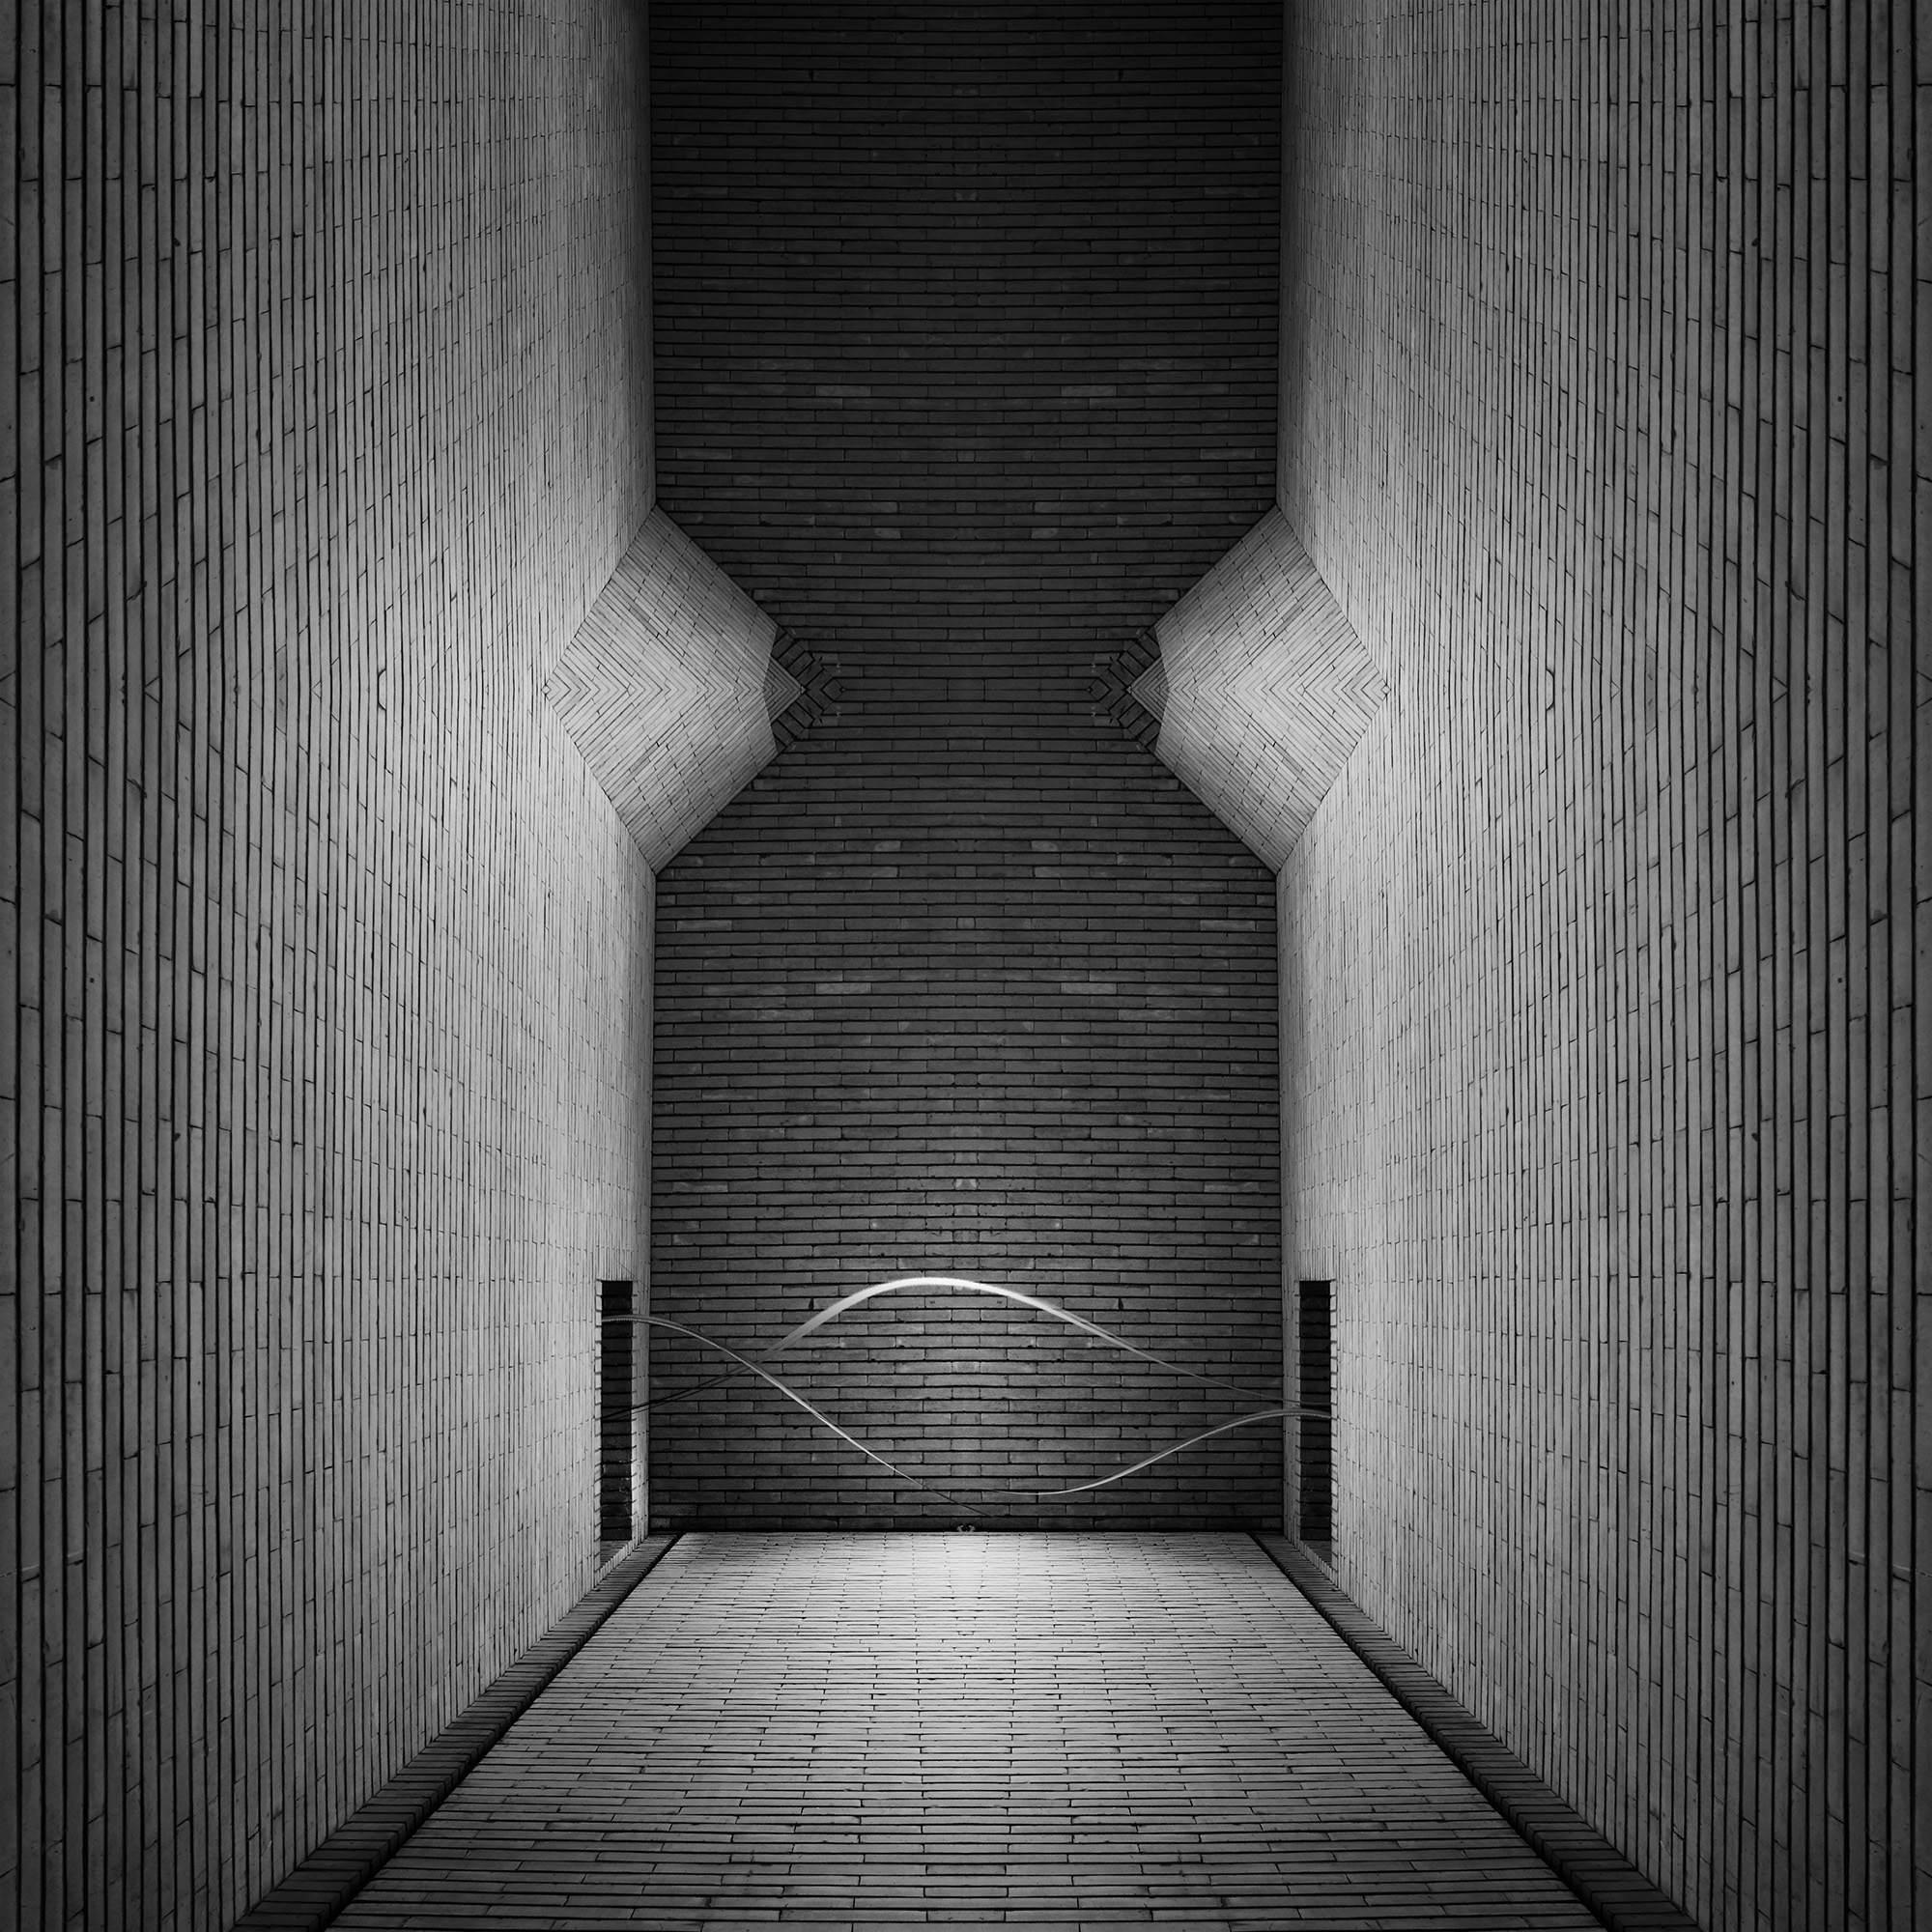 Milad_Safabakhsh_The spce in between By Milad safabakhsh (1).jpg